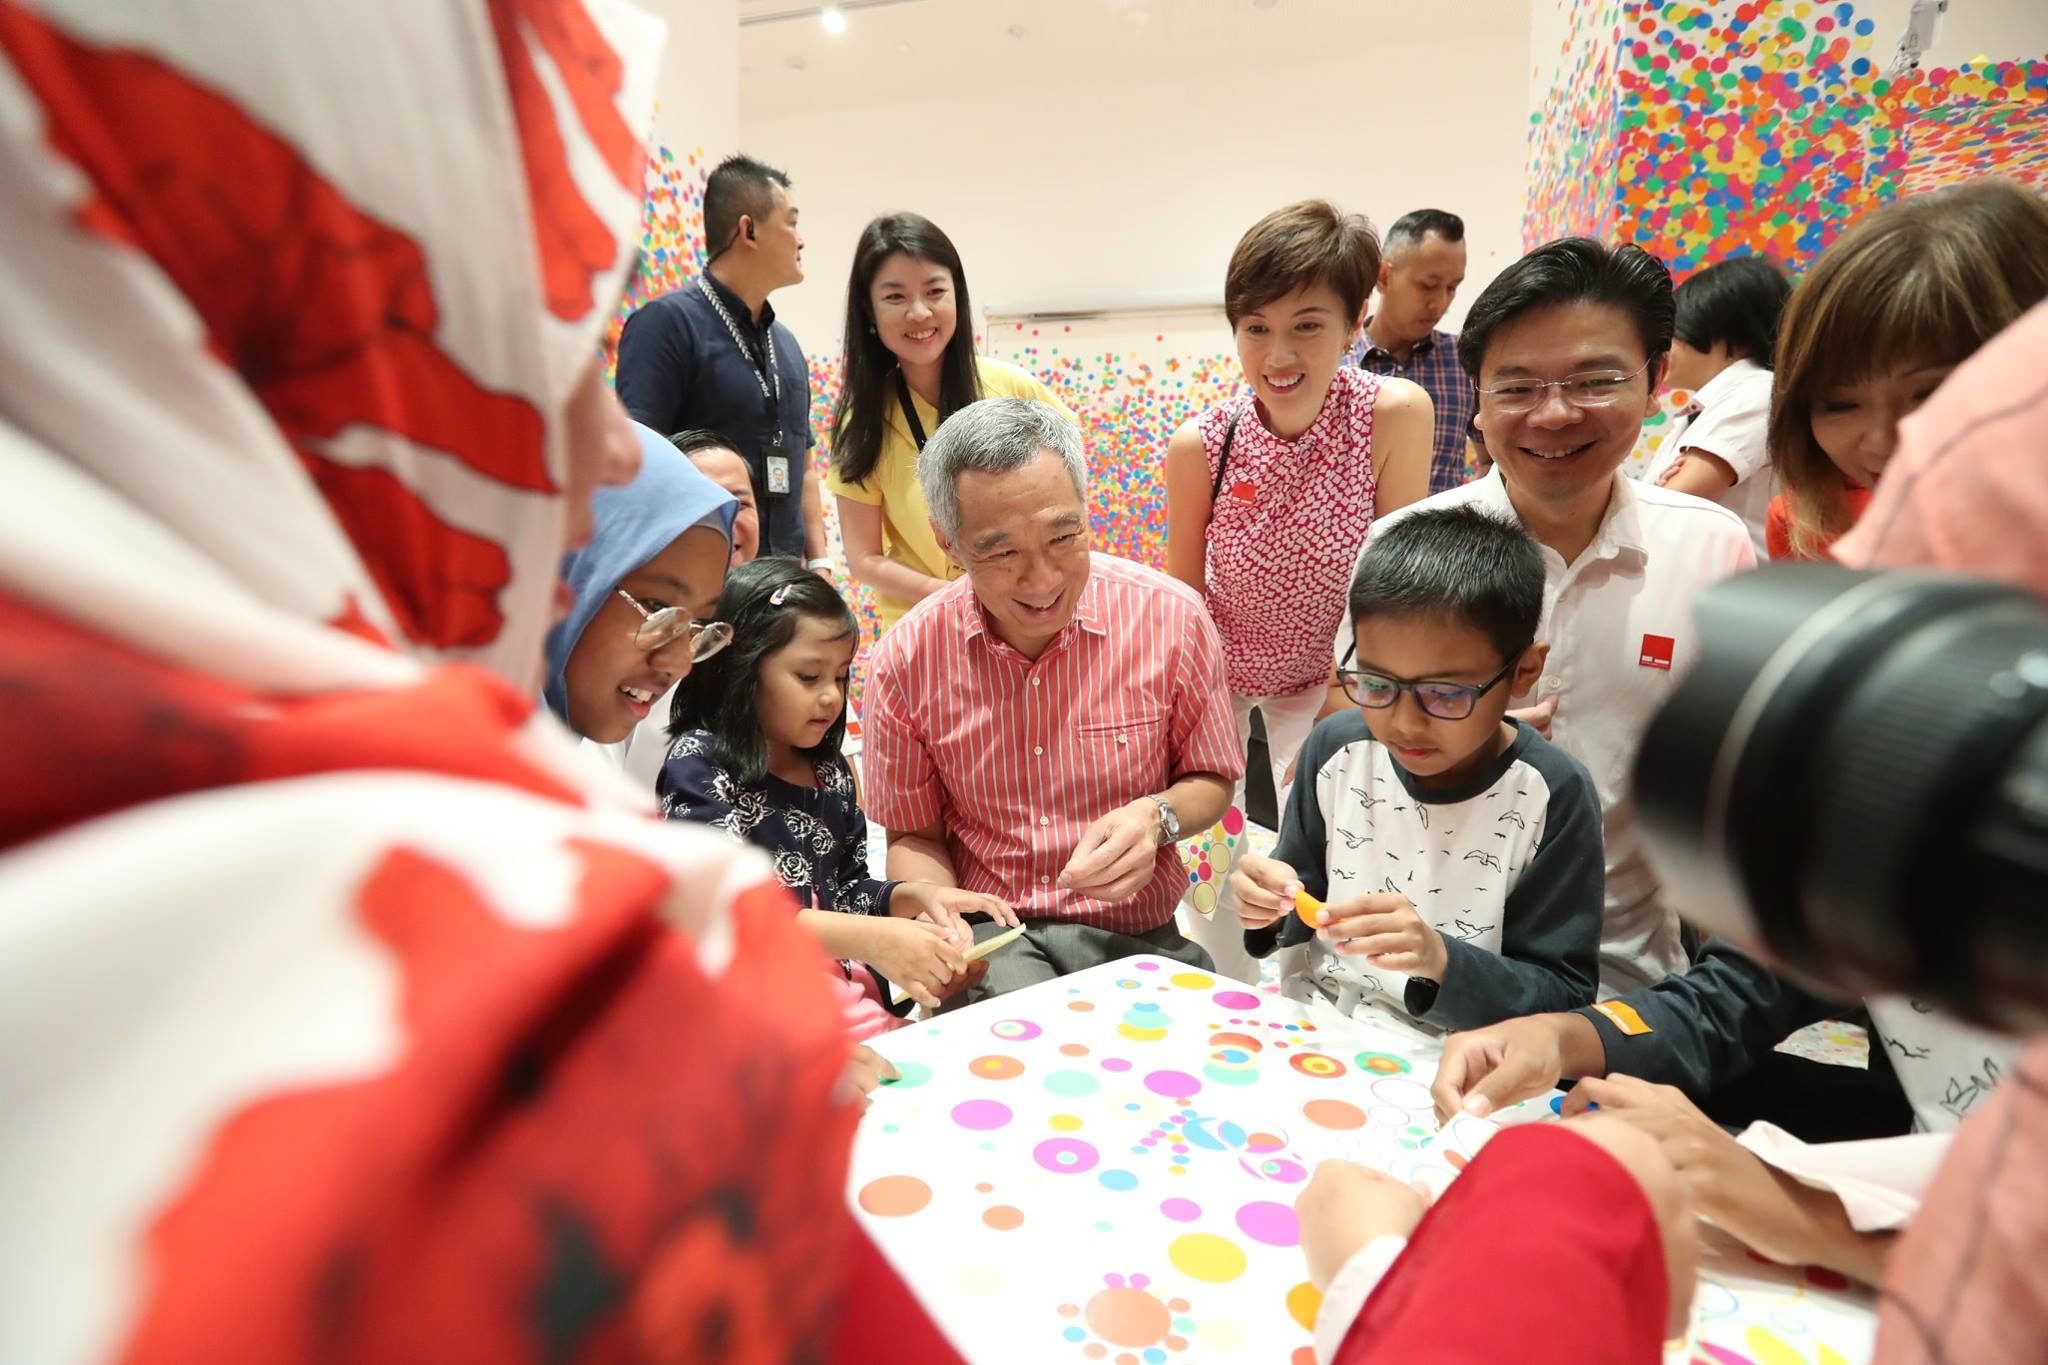 Photo courtesy: Betty Chua (LHL FB page)